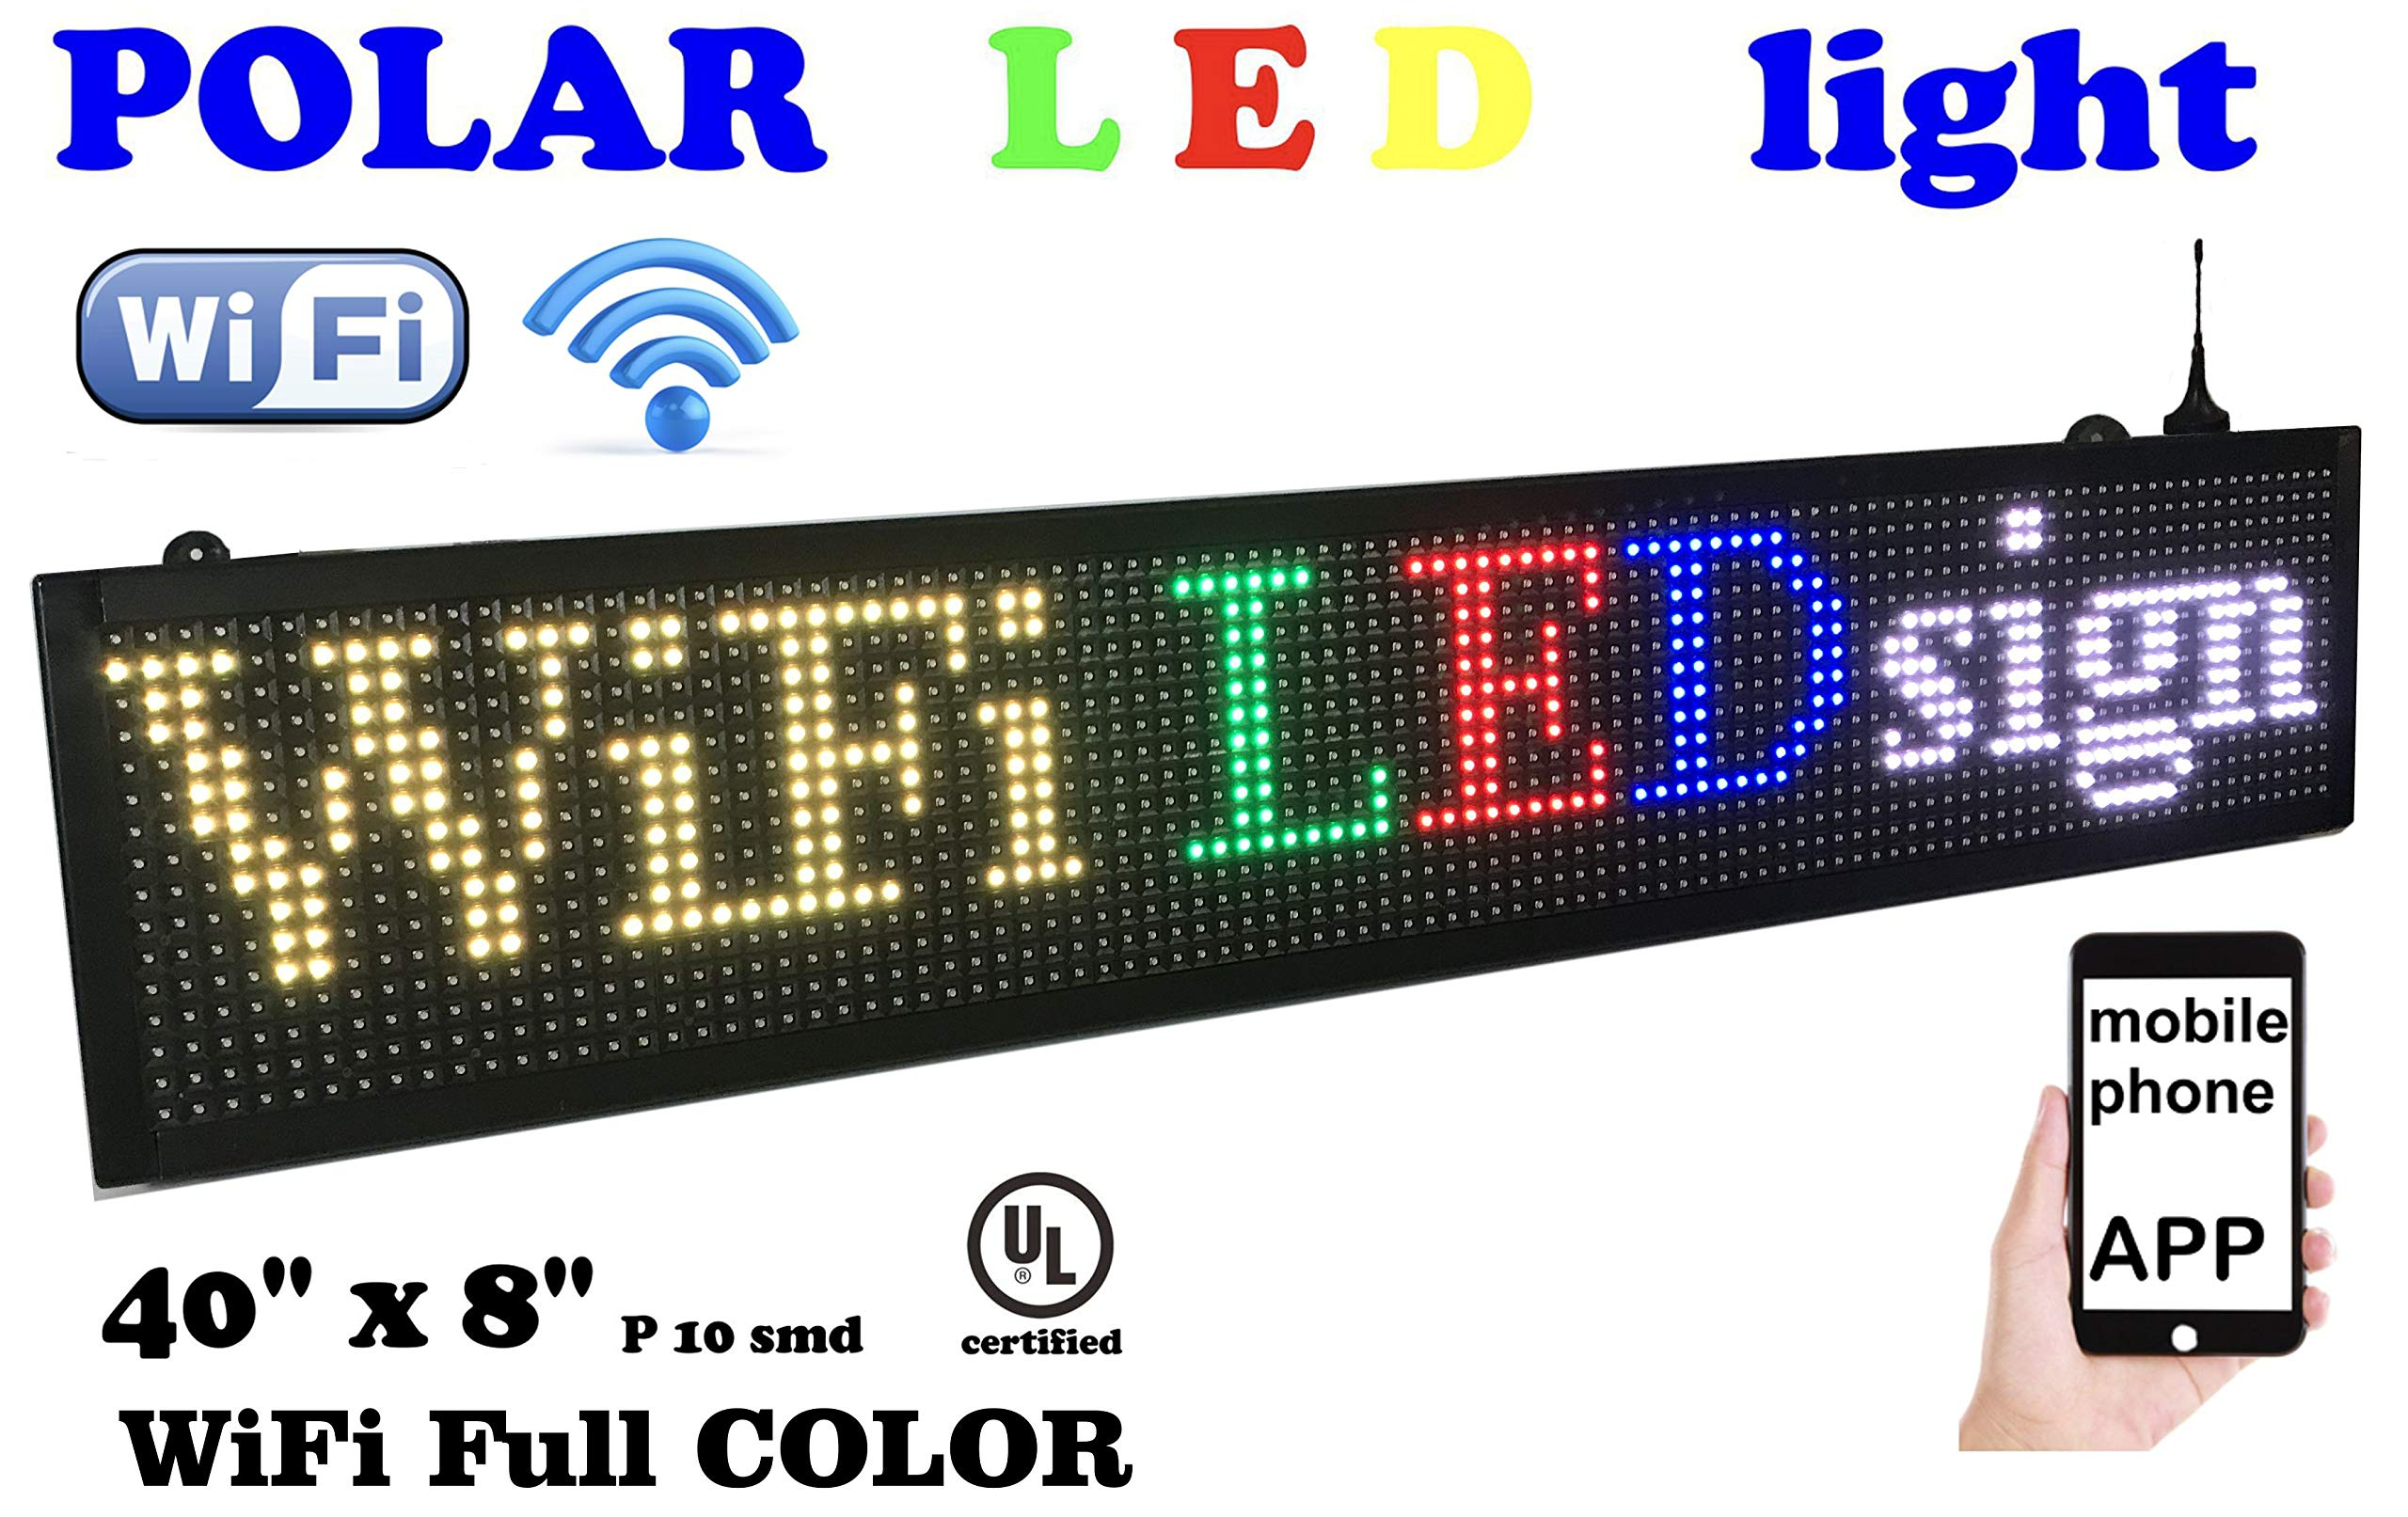 WiFi LED Sign, 7 Color Sign 40'' x 8'' with high Resolution P10 and New SMD Technology. Perfect Solution for Advertising